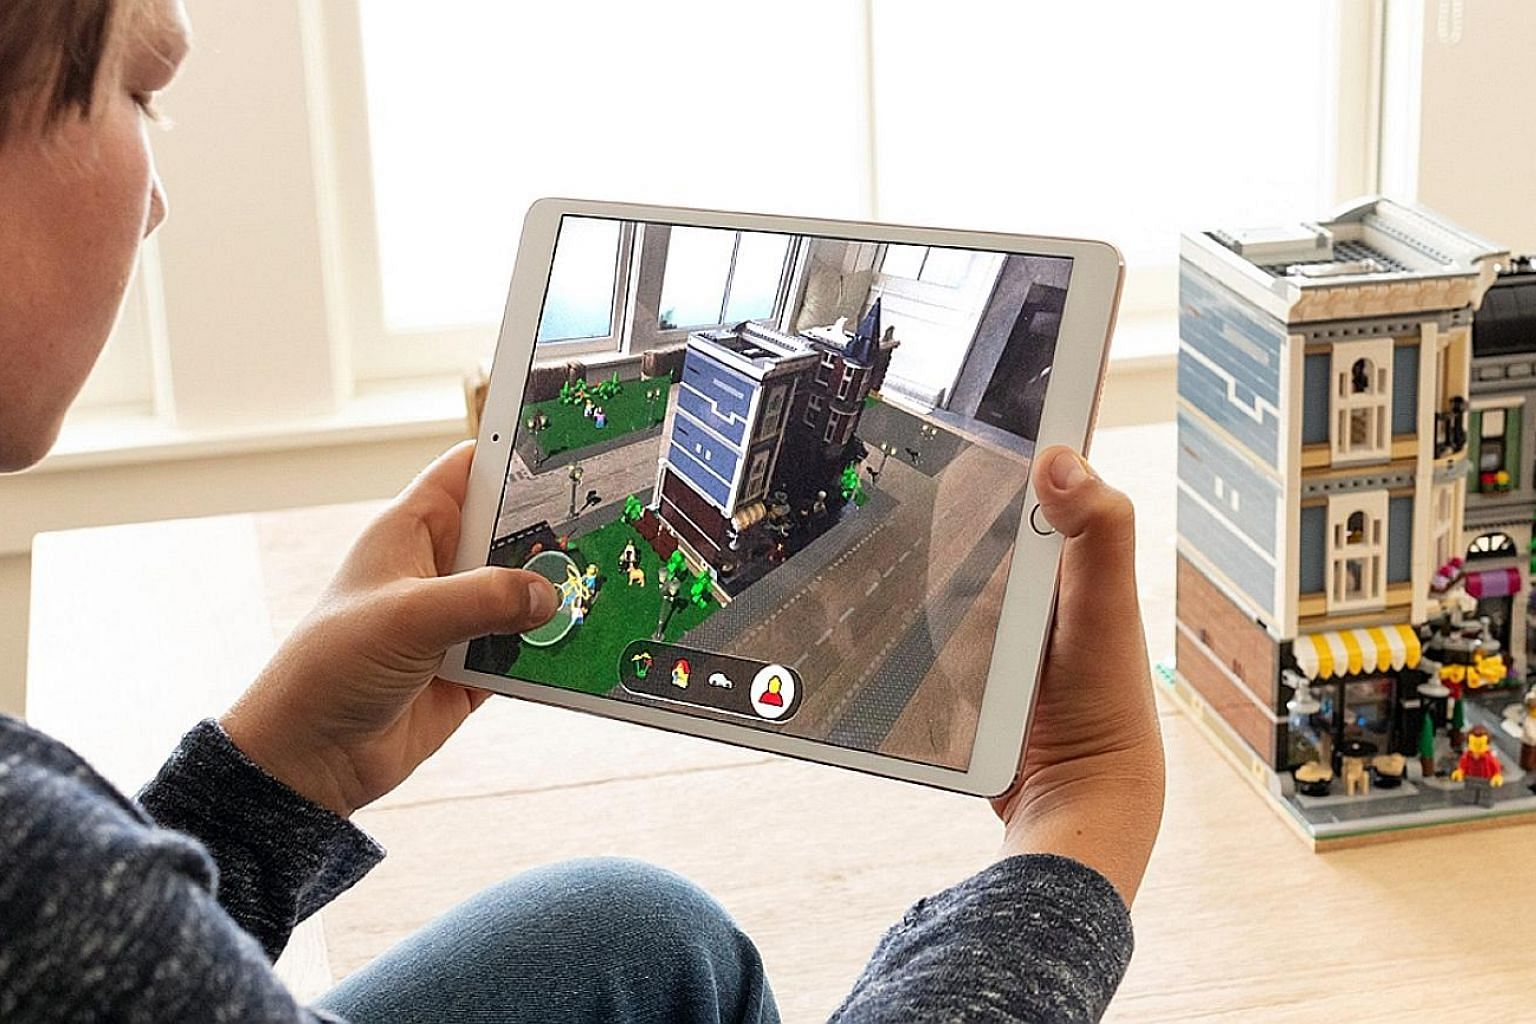 The Lego AR game (above) lets players add a virtual game world to a Lego building, then insert characters and vehicles. Memoji (left) lets users create customised animated emojis.